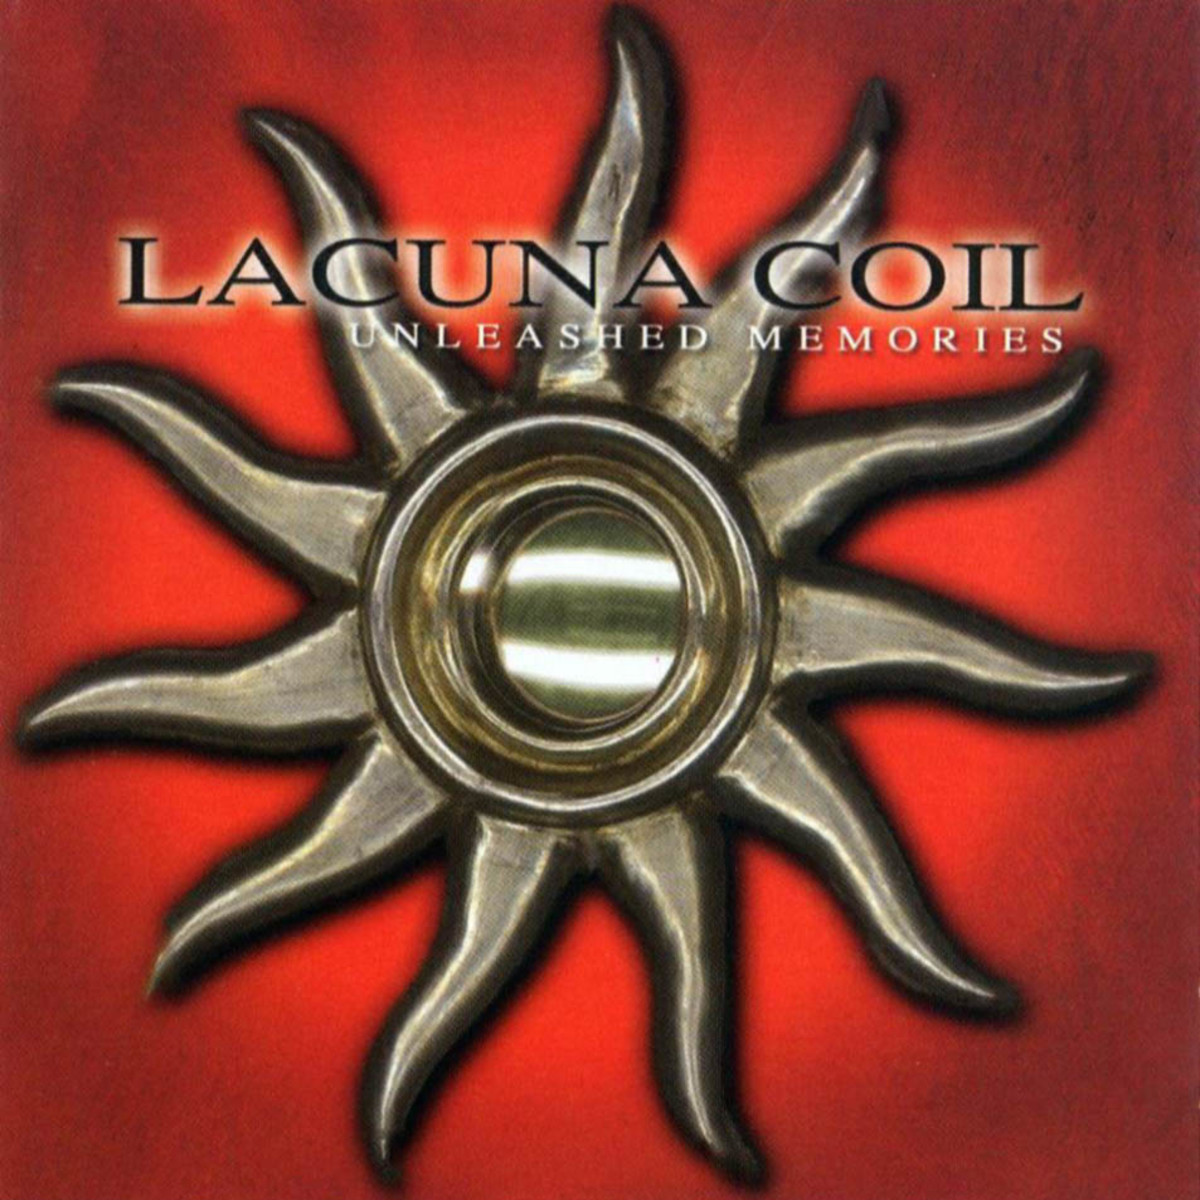 3 Major Reasons Why The Album Unleashed Memories is the Best Album by Lacuna Coil